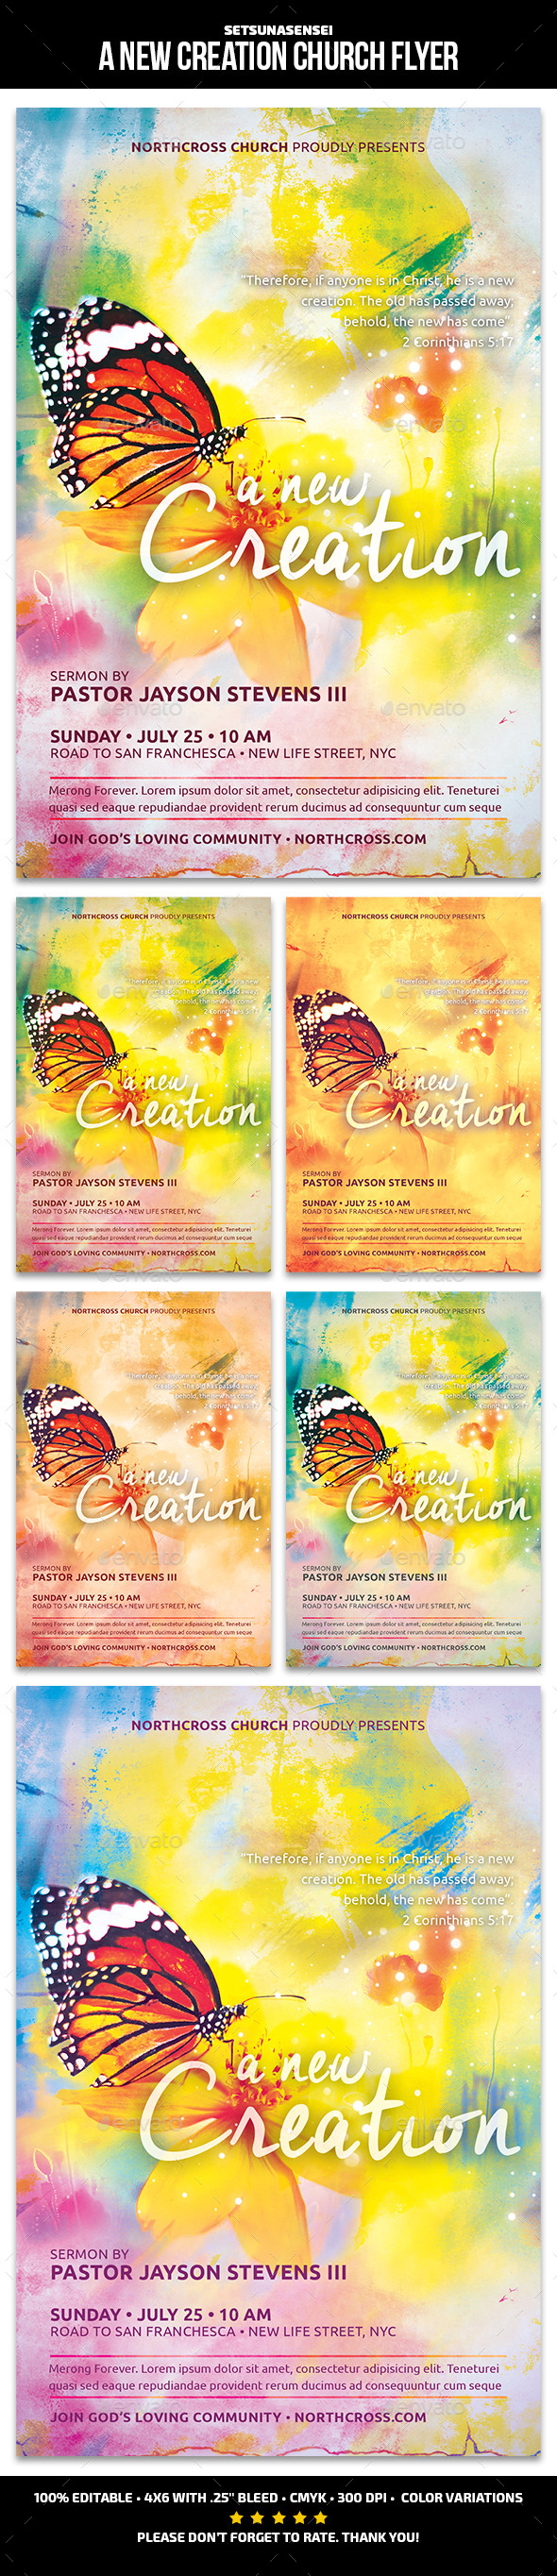 A New Creation Church Flyer - Church Flyers